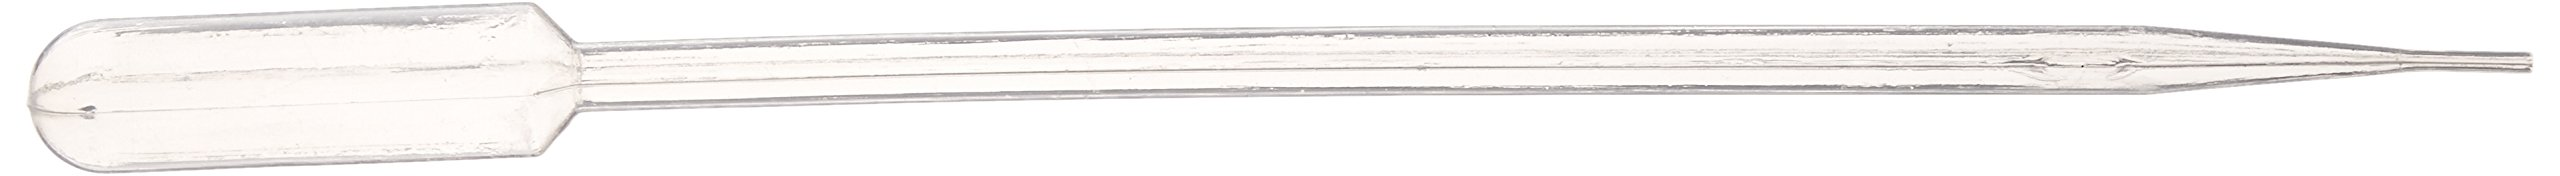 Globe Scientific 139050 LDPE Extra Long Transfer Pipet, Non-Sterile, 300mm Length, 23.0mL Capacity (Box of 100)